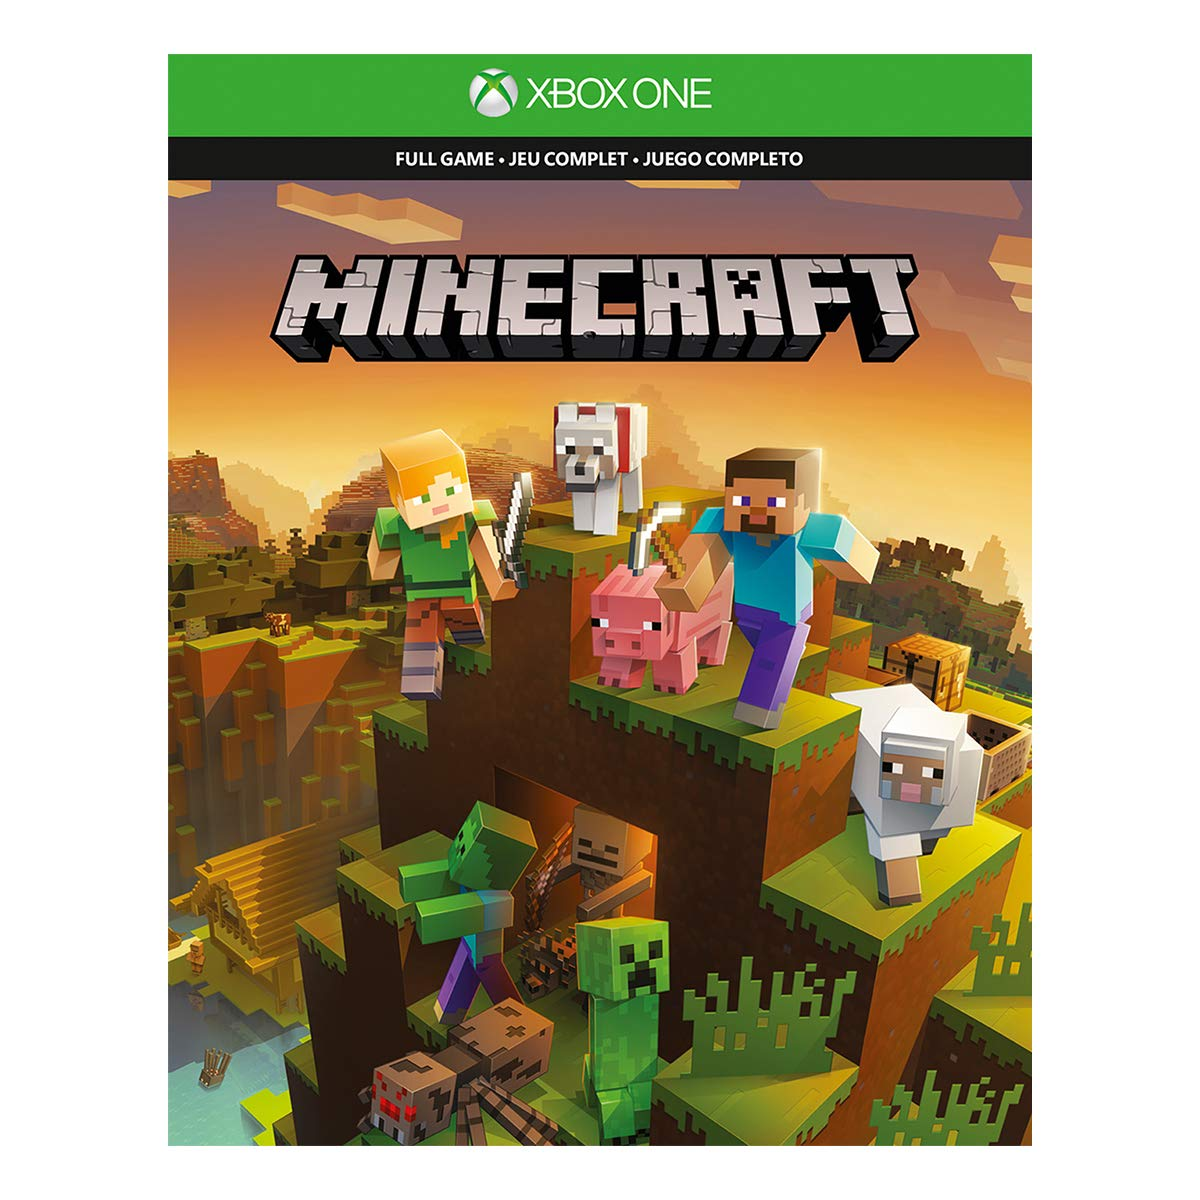 Xbox One S 1TB Console - Minecraft Creators Bundle (Discontinued) by Microsoft (Image #5)